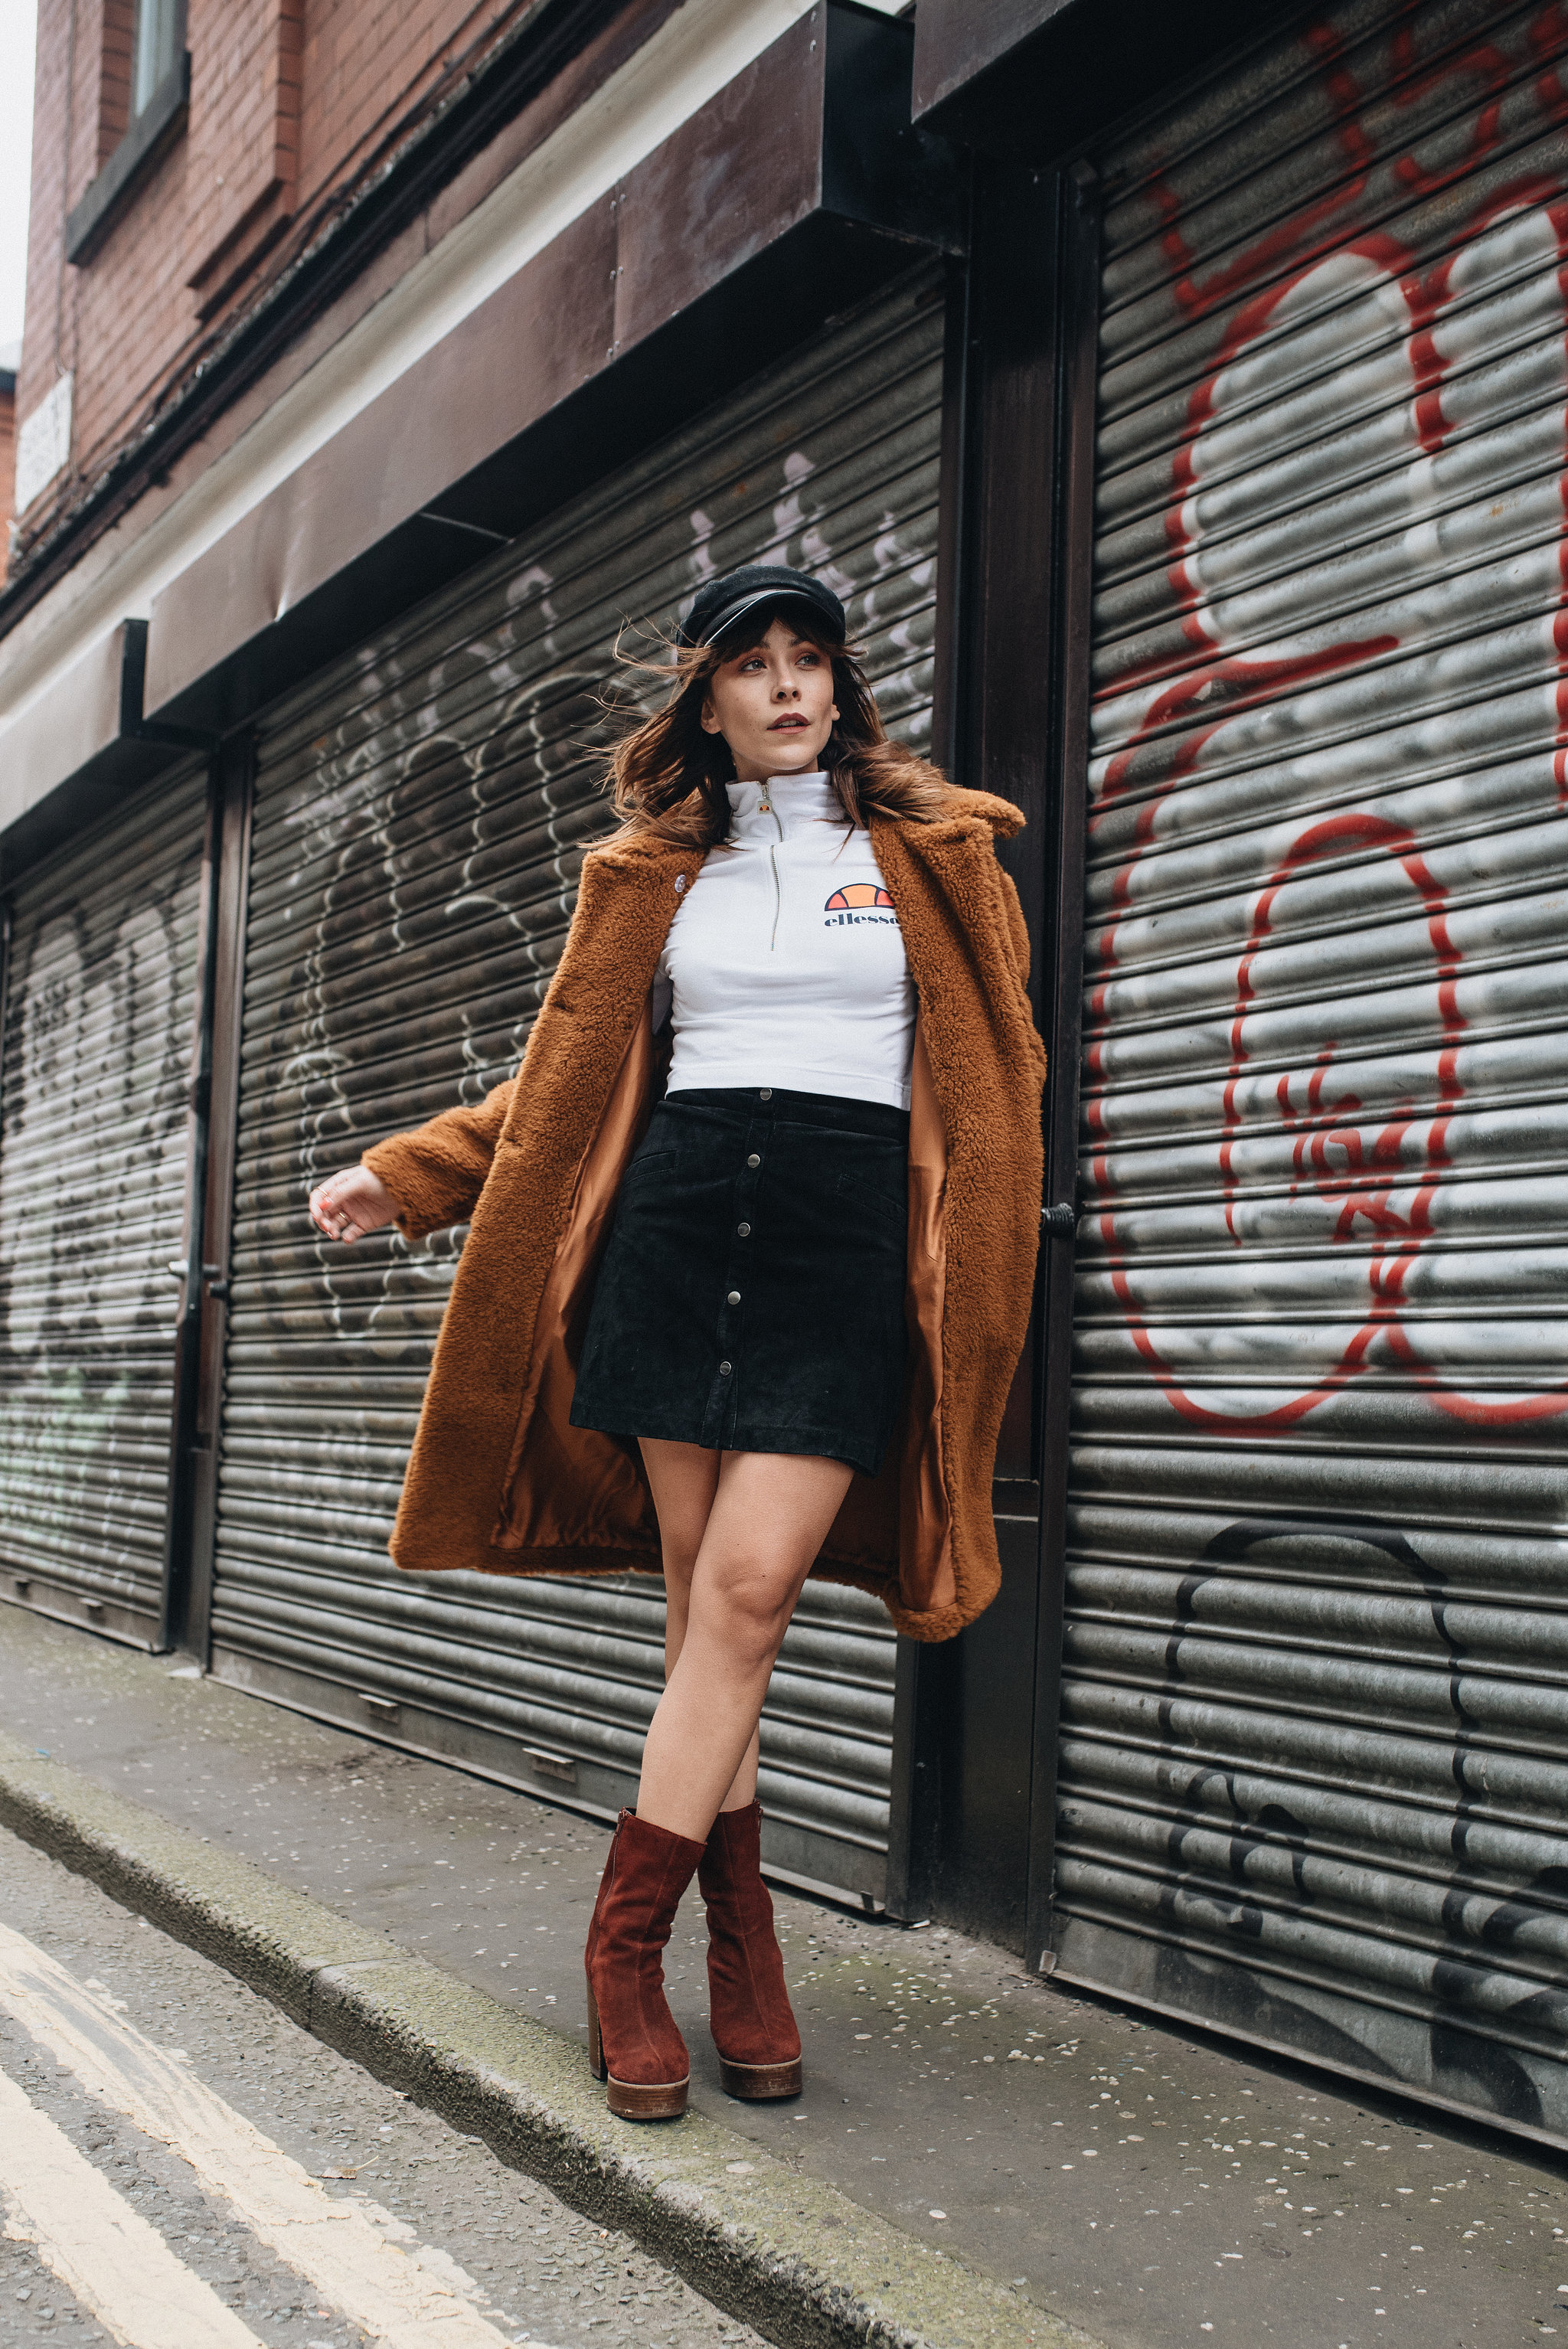 MEGAN ELLABY WEARS SEVENTIES INSPIRED OUTFIT